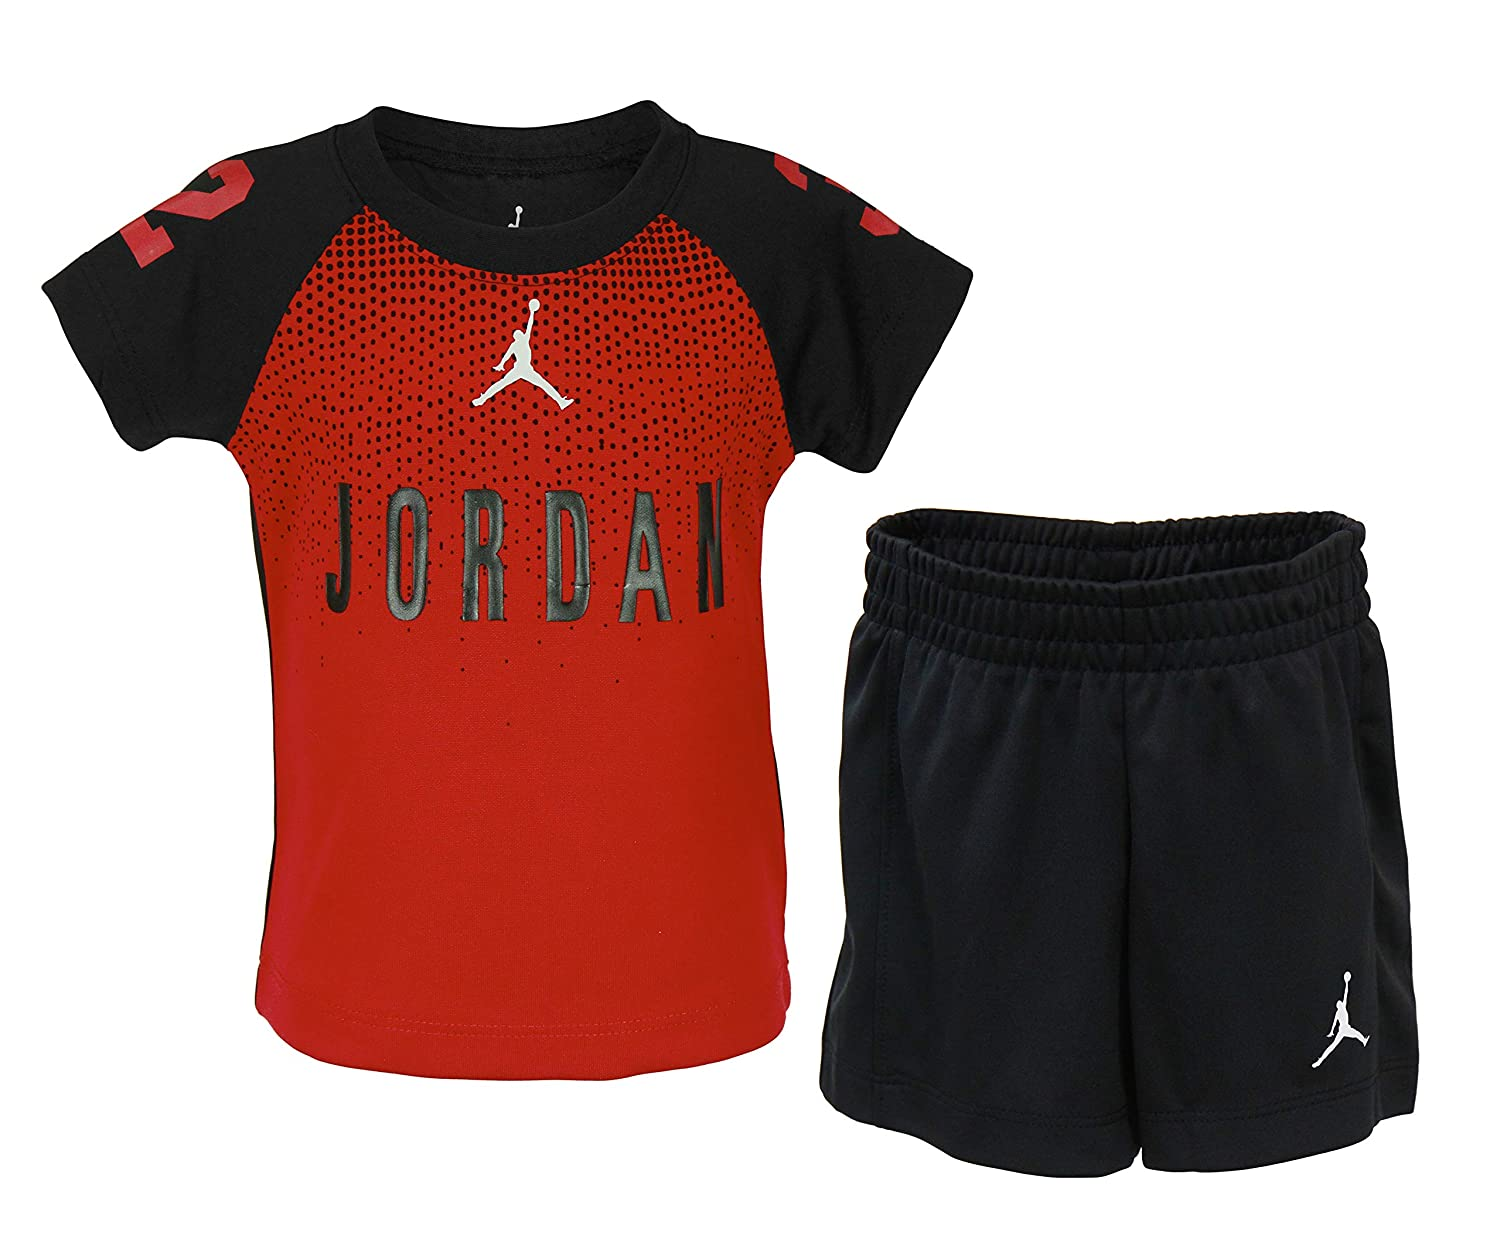 00803f4a6f6a22 Amazon.com  NIKE Baby Boys Jordan Two Piece 23 Jersey   Color Block Mesh  Shorts Set - Black (12M)  Clothing